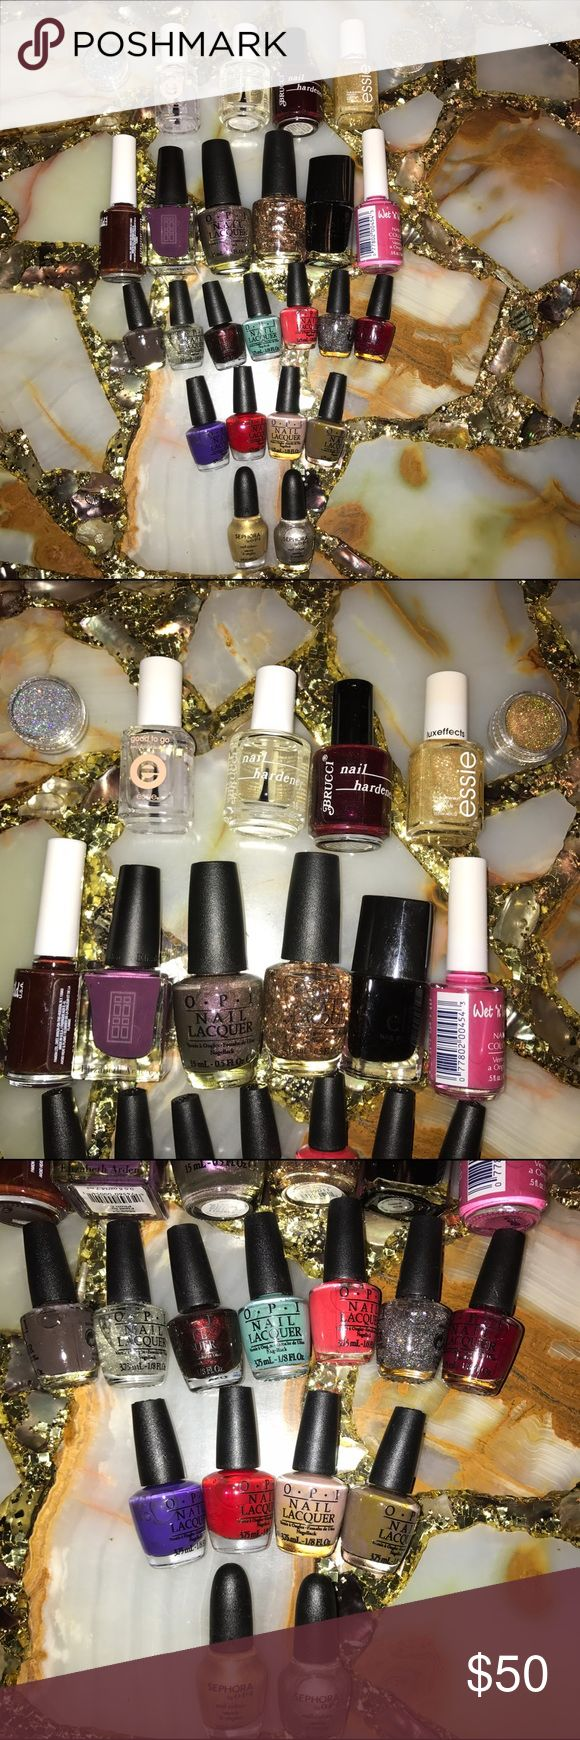 💅🏻 23 Nail Polishes  💅🏻 23 Nail Polishes. 11 Opi mini 3.75ml 2 opi by Sephora 3.75ml, 2 Wet 'n' Wild 14ml, 1 Elizabeth Arden 14.7ml, 1 elf, 2 Brucci, 1 Essie  luxeffects 13.5ml, 1 Essie Good to Go Topcoat, Opi Gold Shimmer, Opi Silver Shimmer, 2 Opi 15ml. **No Trades**  ***Prices are negotiable, offers are welcomed***  Check out the bundle discount / I accept reasonable offers. Happy Shopping! 😊 Opi Essie Sephora Other